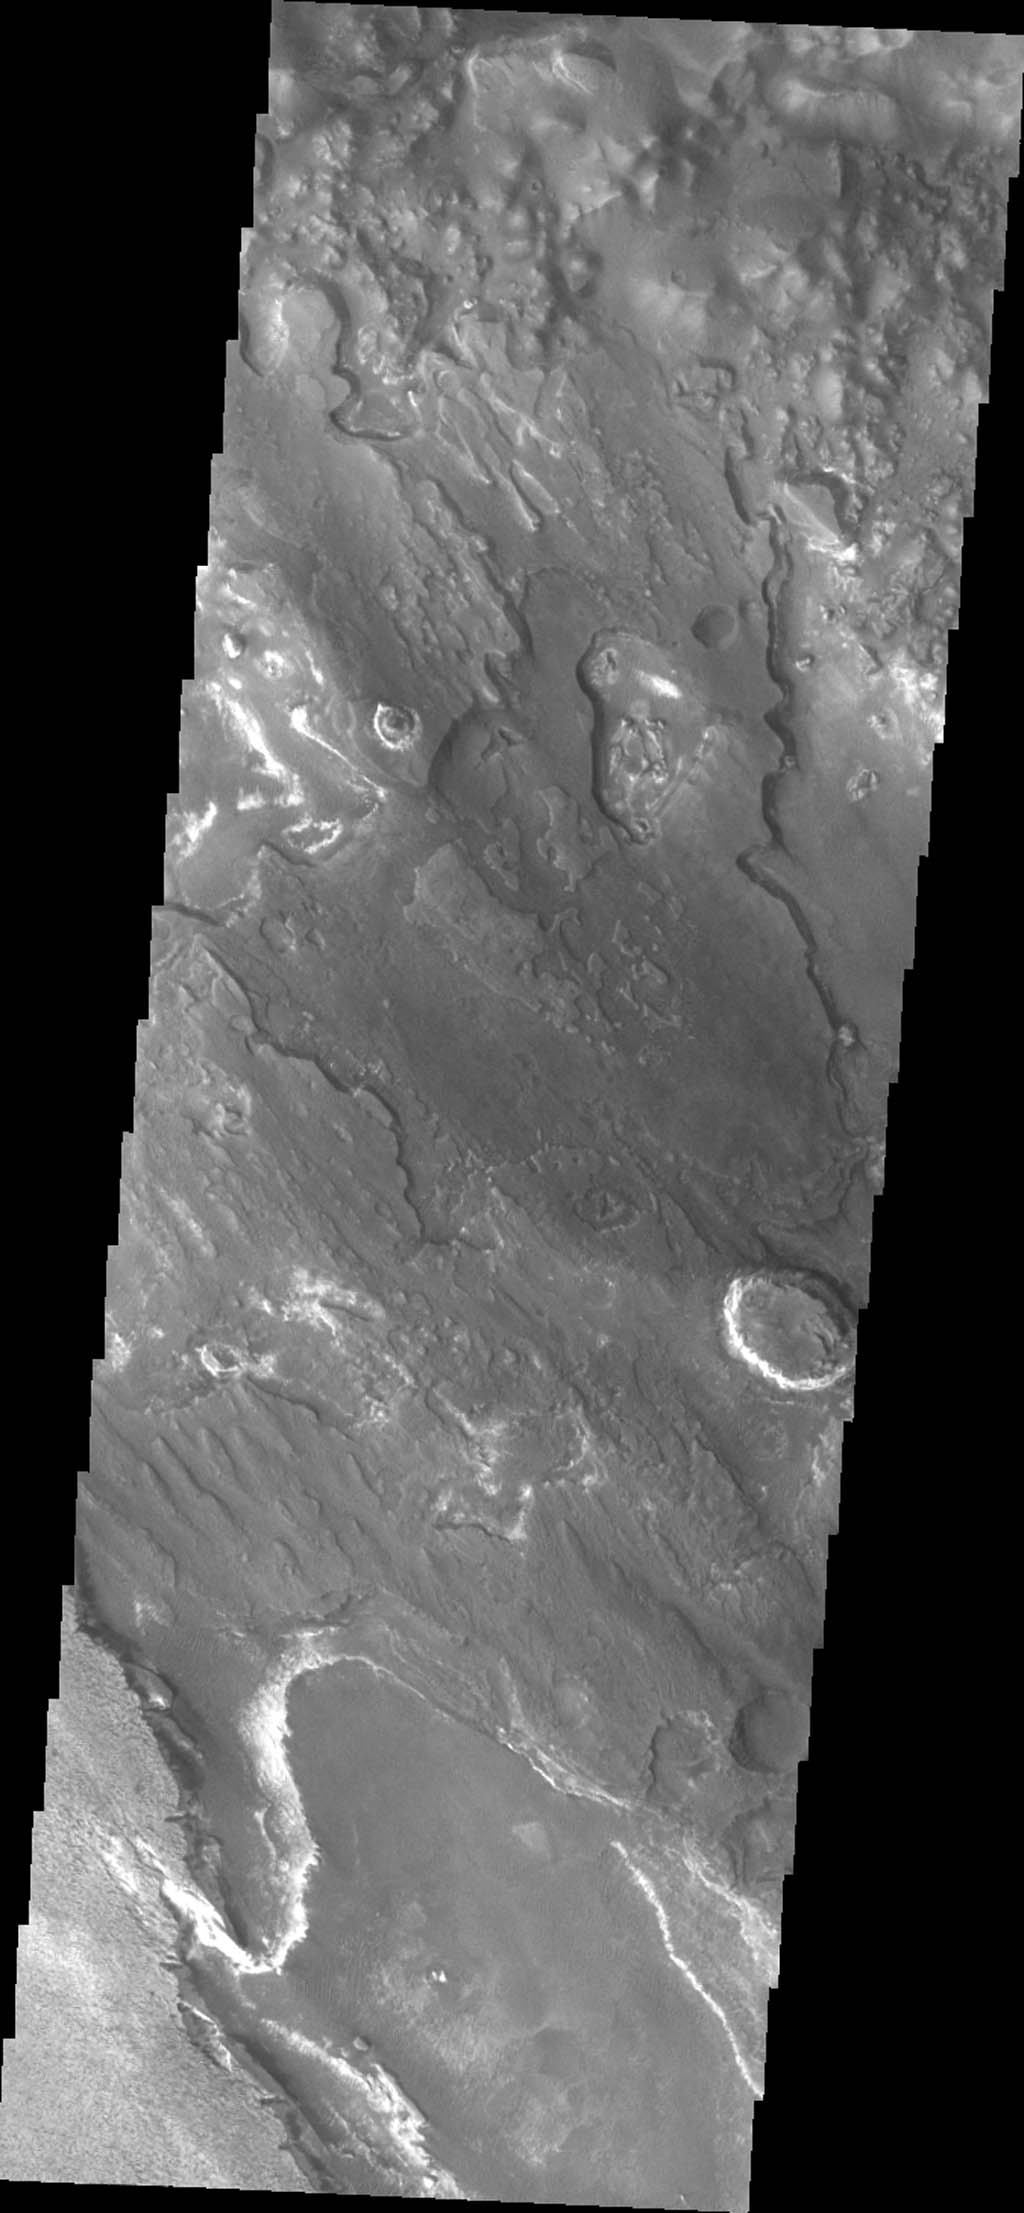 This image captured by NASA's 2001 Mars Odyssey shows a portion of Aram Chaos.